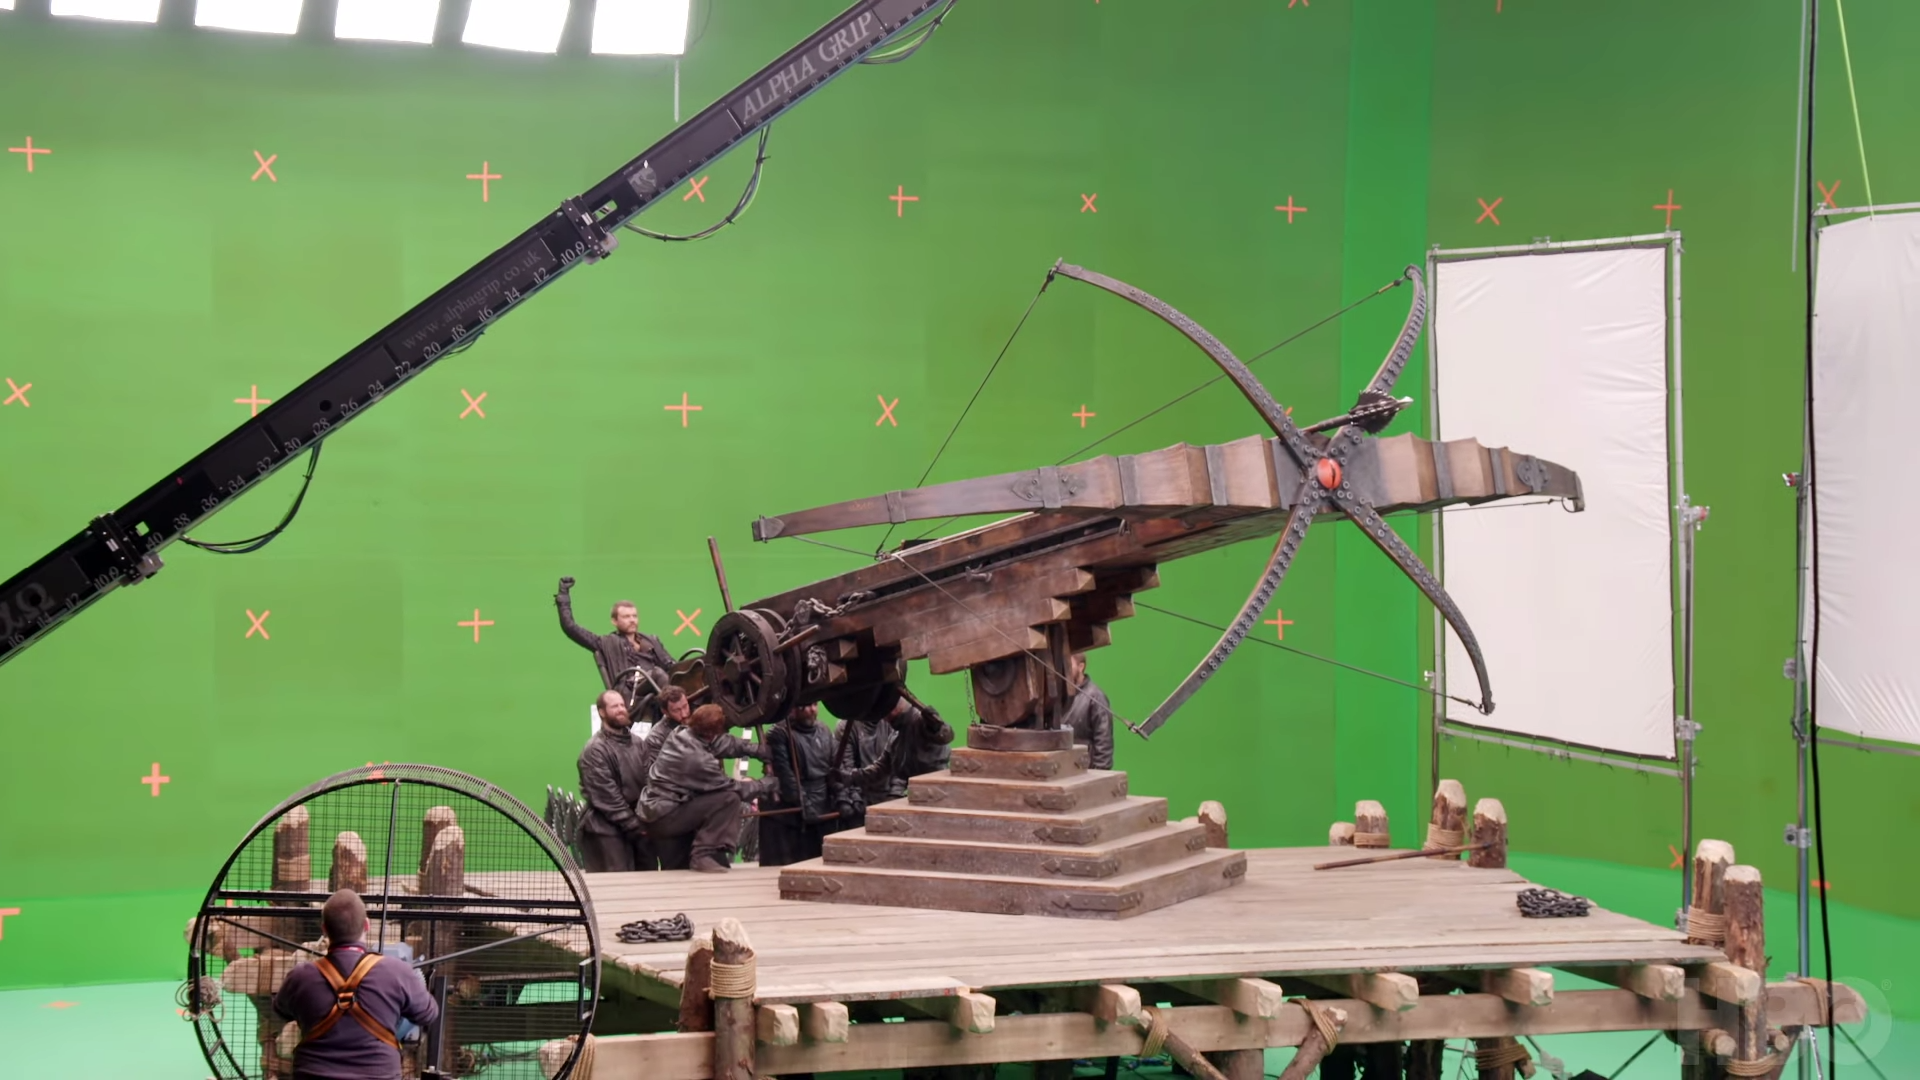 More behind the scenes from 'Game of Thrones'